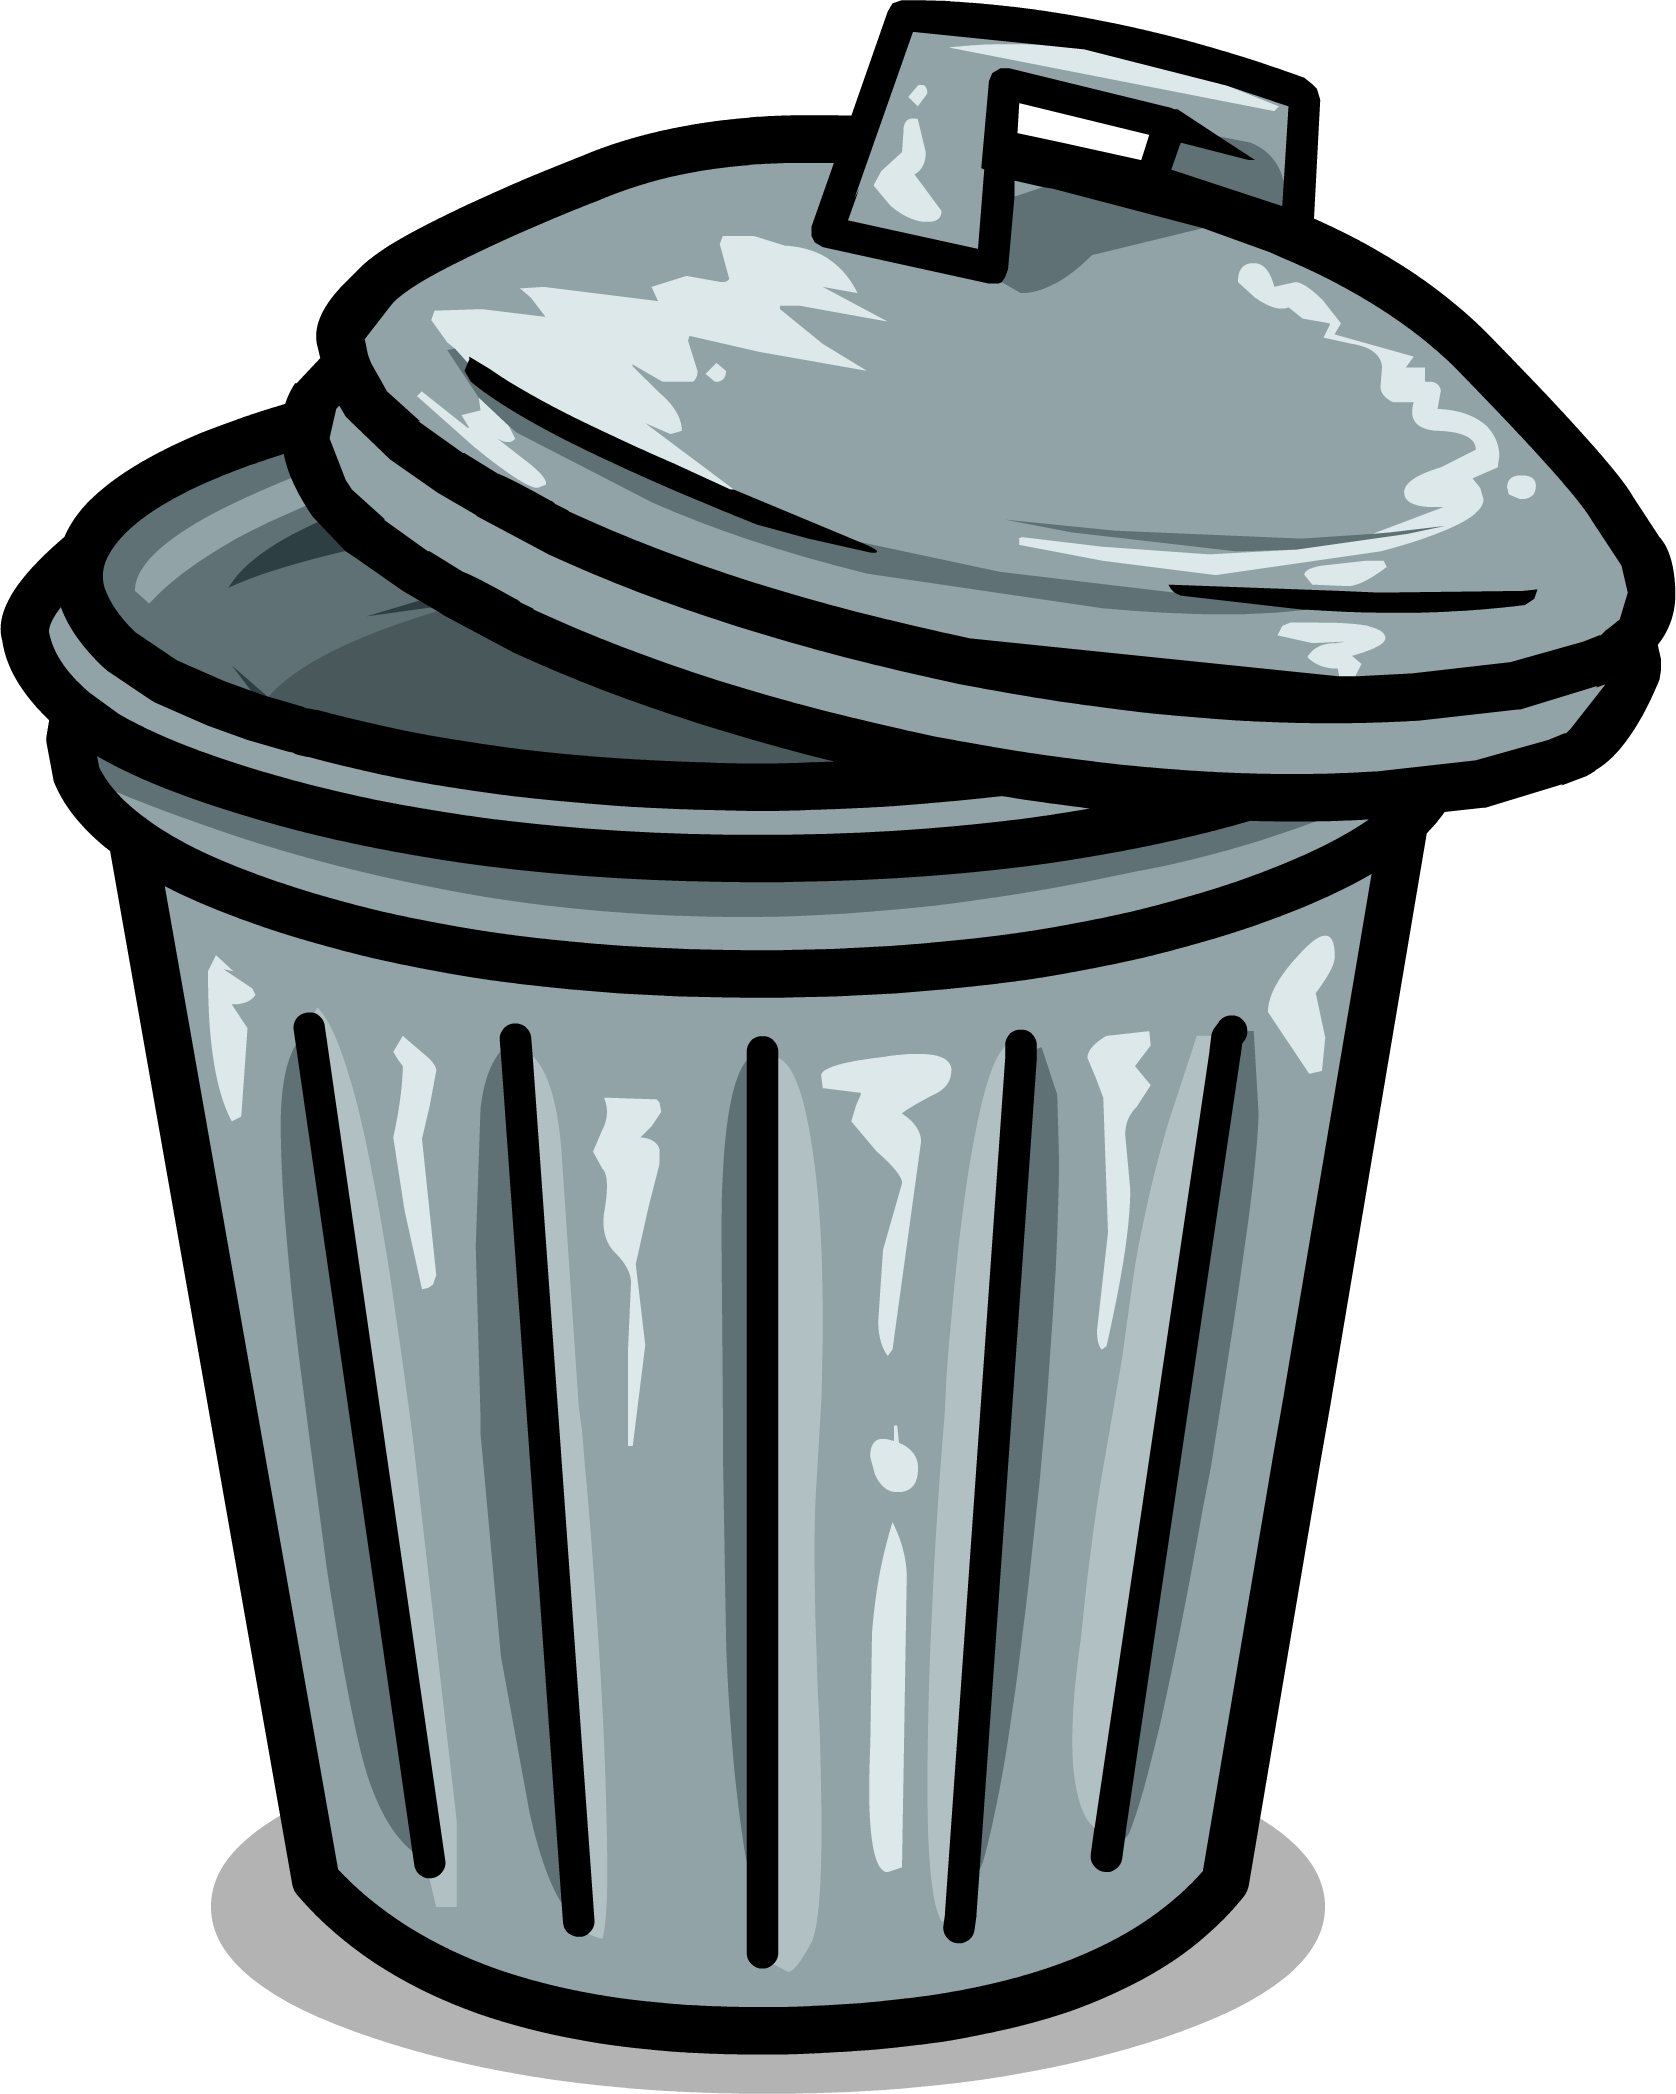 Garbage clipart home, Garbage home Transparent FREE for.